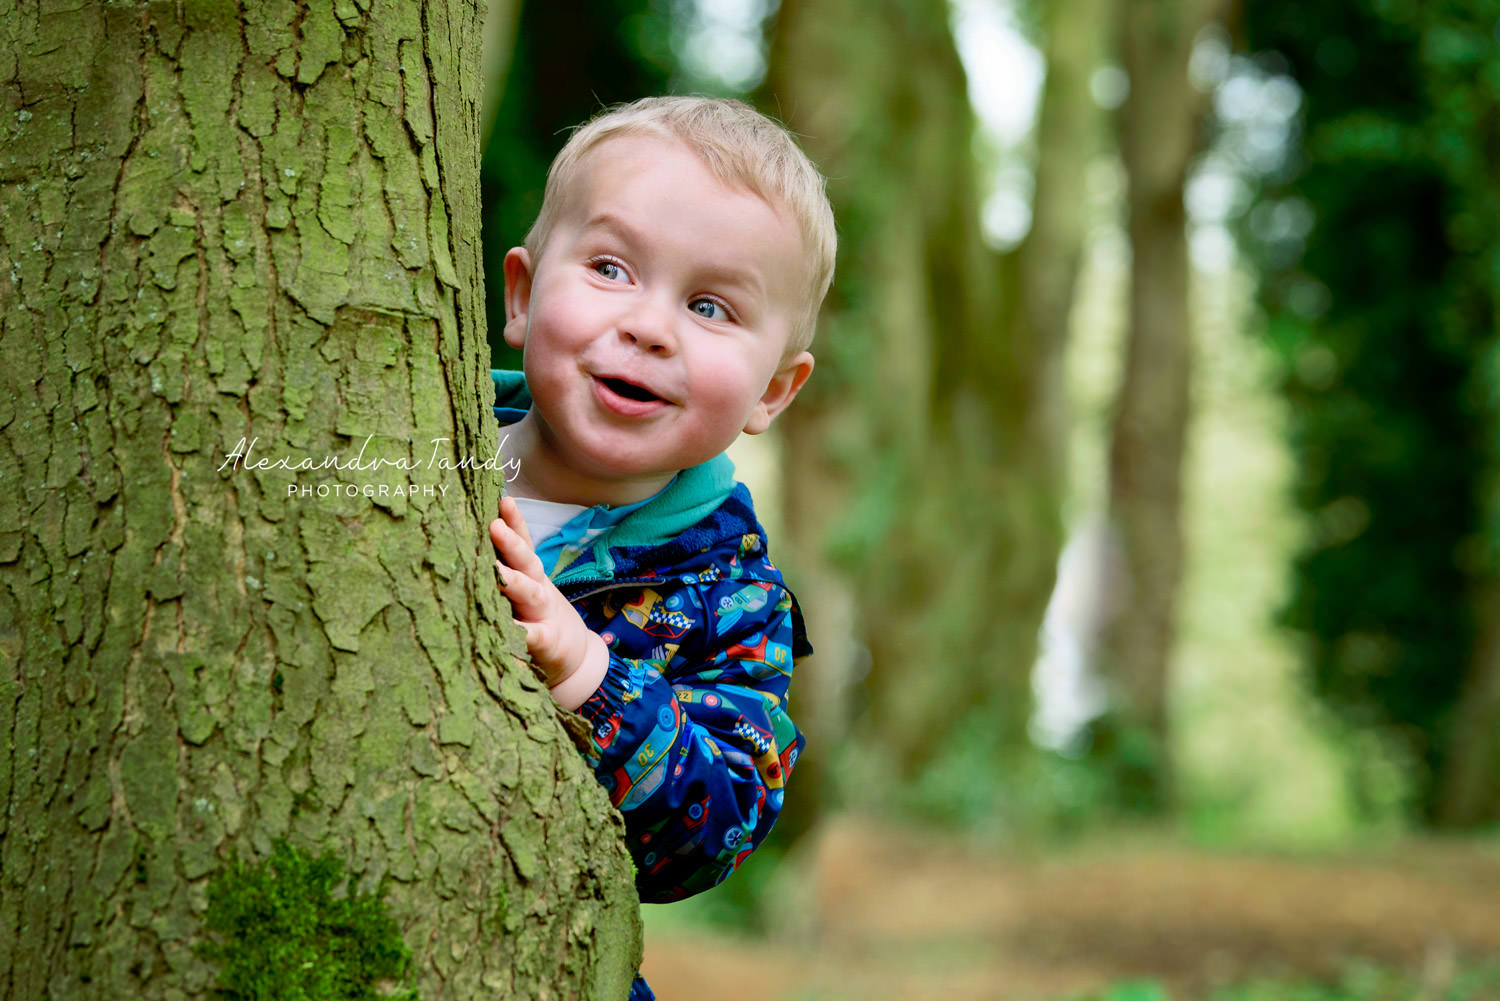 Boy playing peekaboo with family photographer